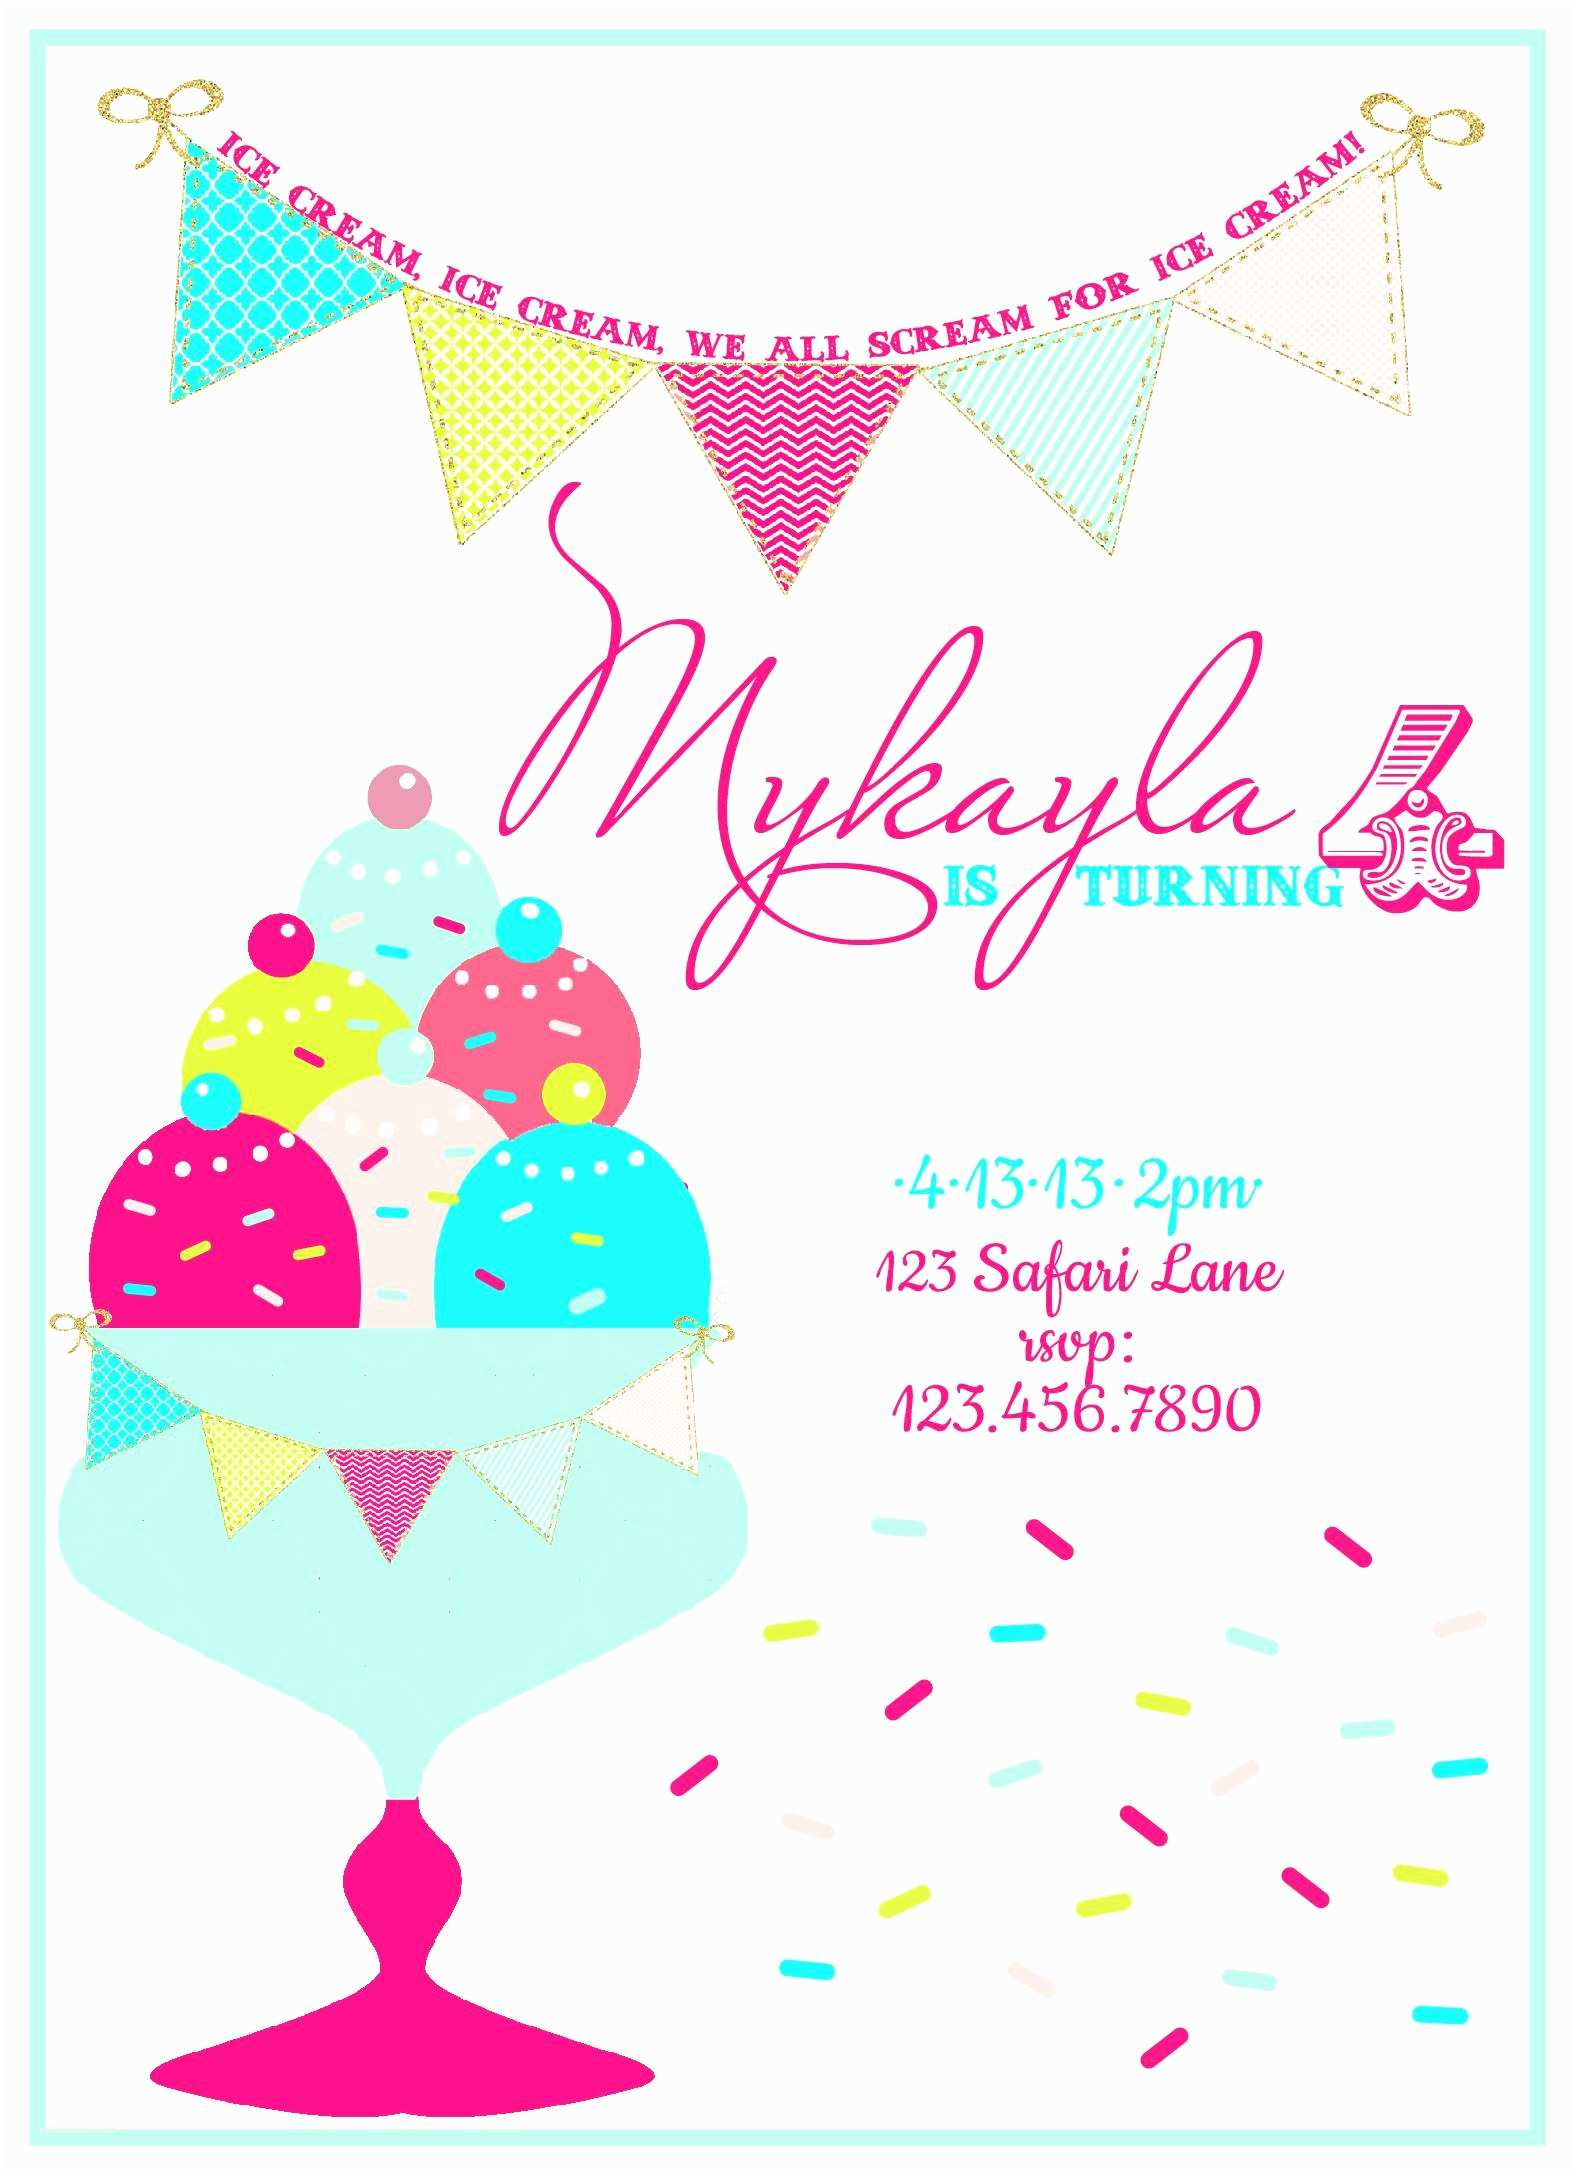 image regarding Ice Cream Party Invitations Printable Free titled Ice Product Birthday Celebration Invites 4 Simplest Of Totally free